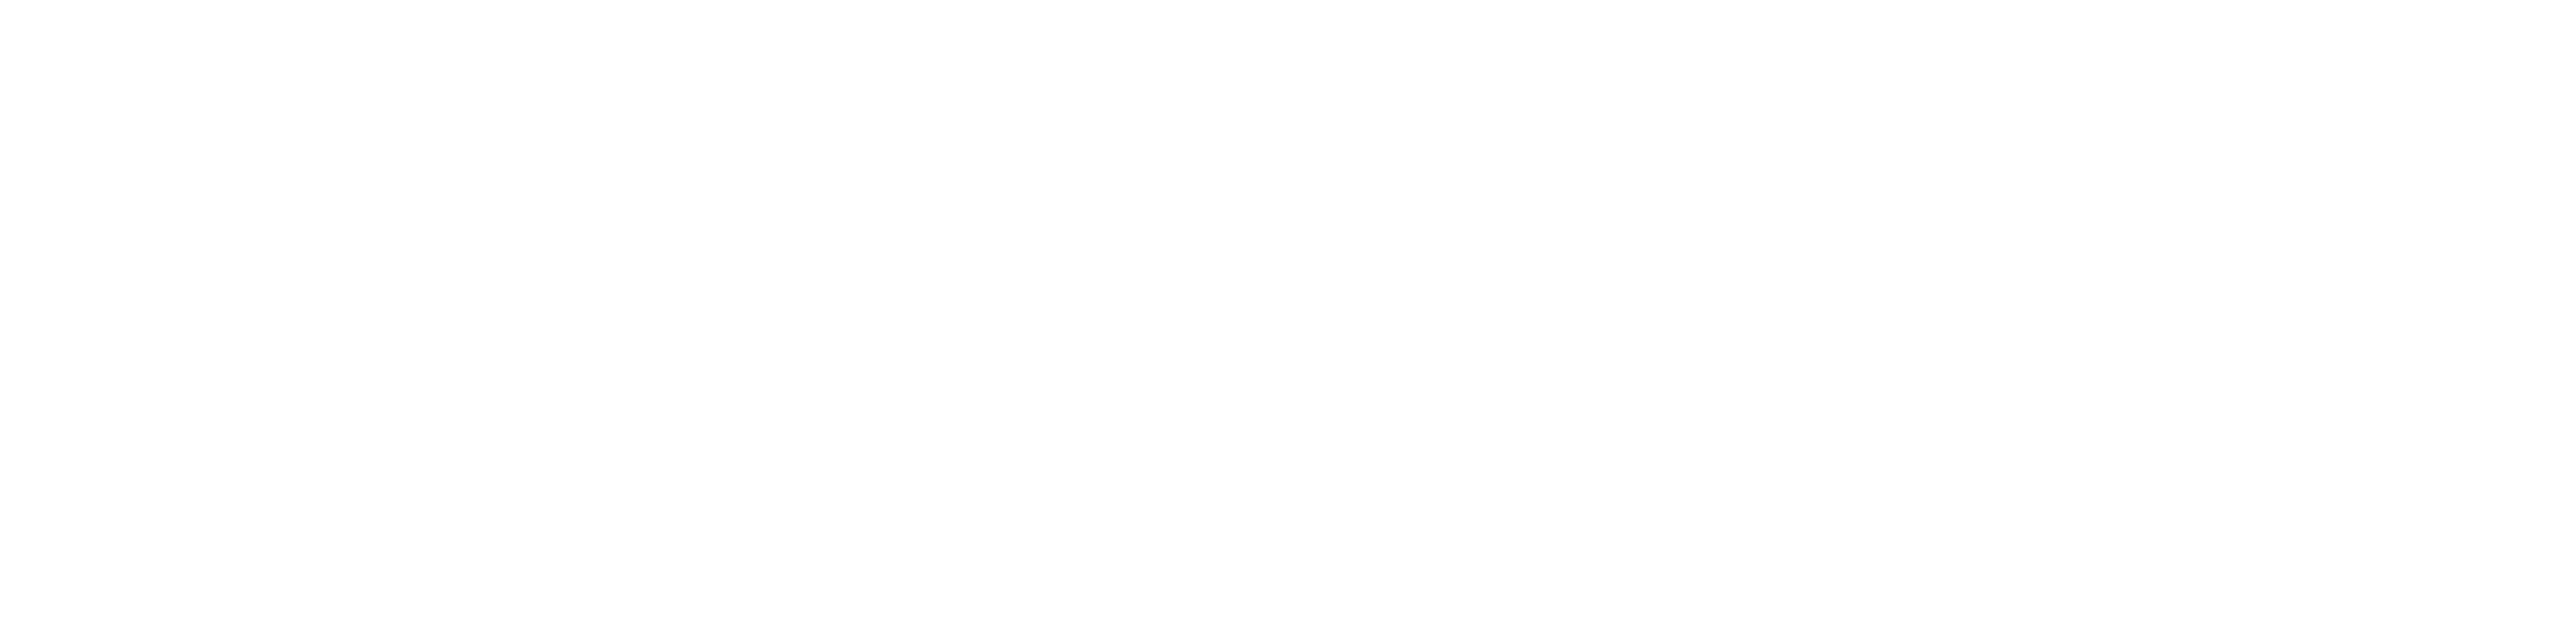 Syscom Digital – Your Interactive Marketing TEAM Logo